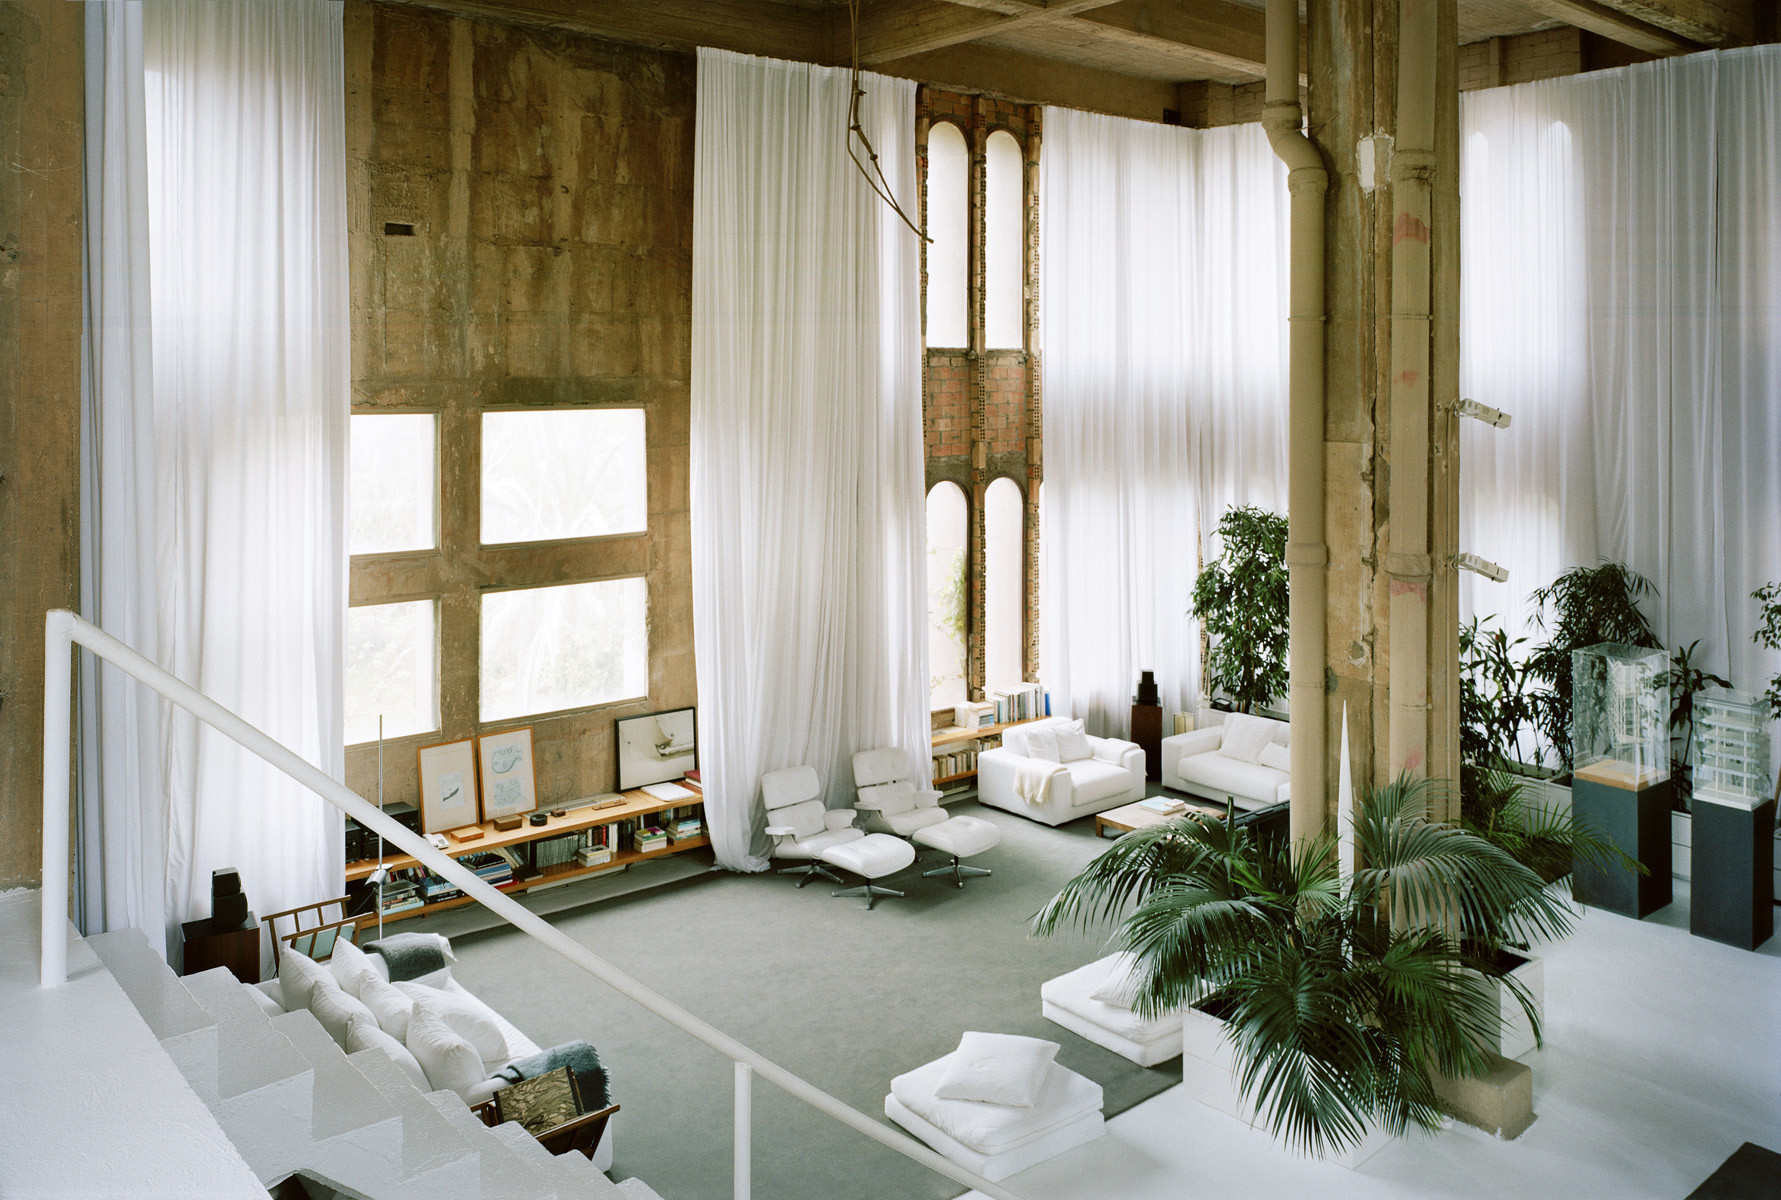 The Factory / Ricardo Bofill, © Courtesy of Ricardo Bofill